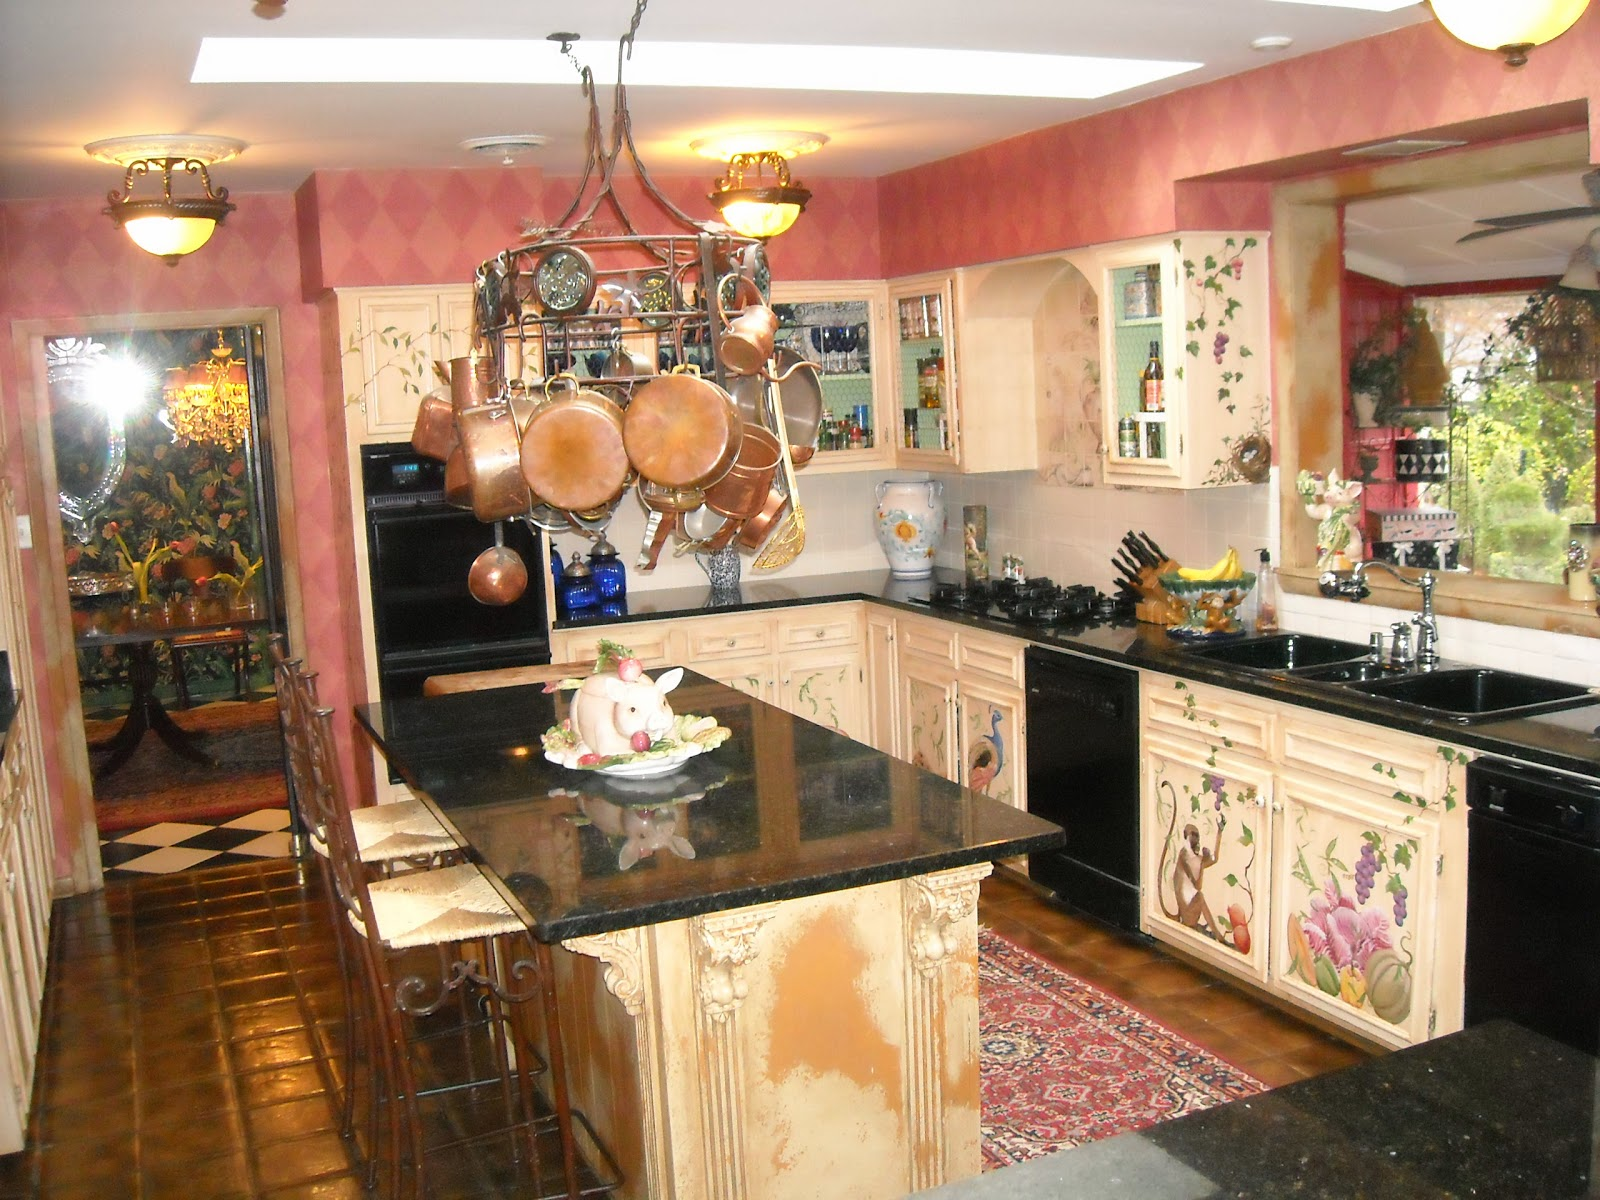 Bows on a Pig: French Country Kitchen